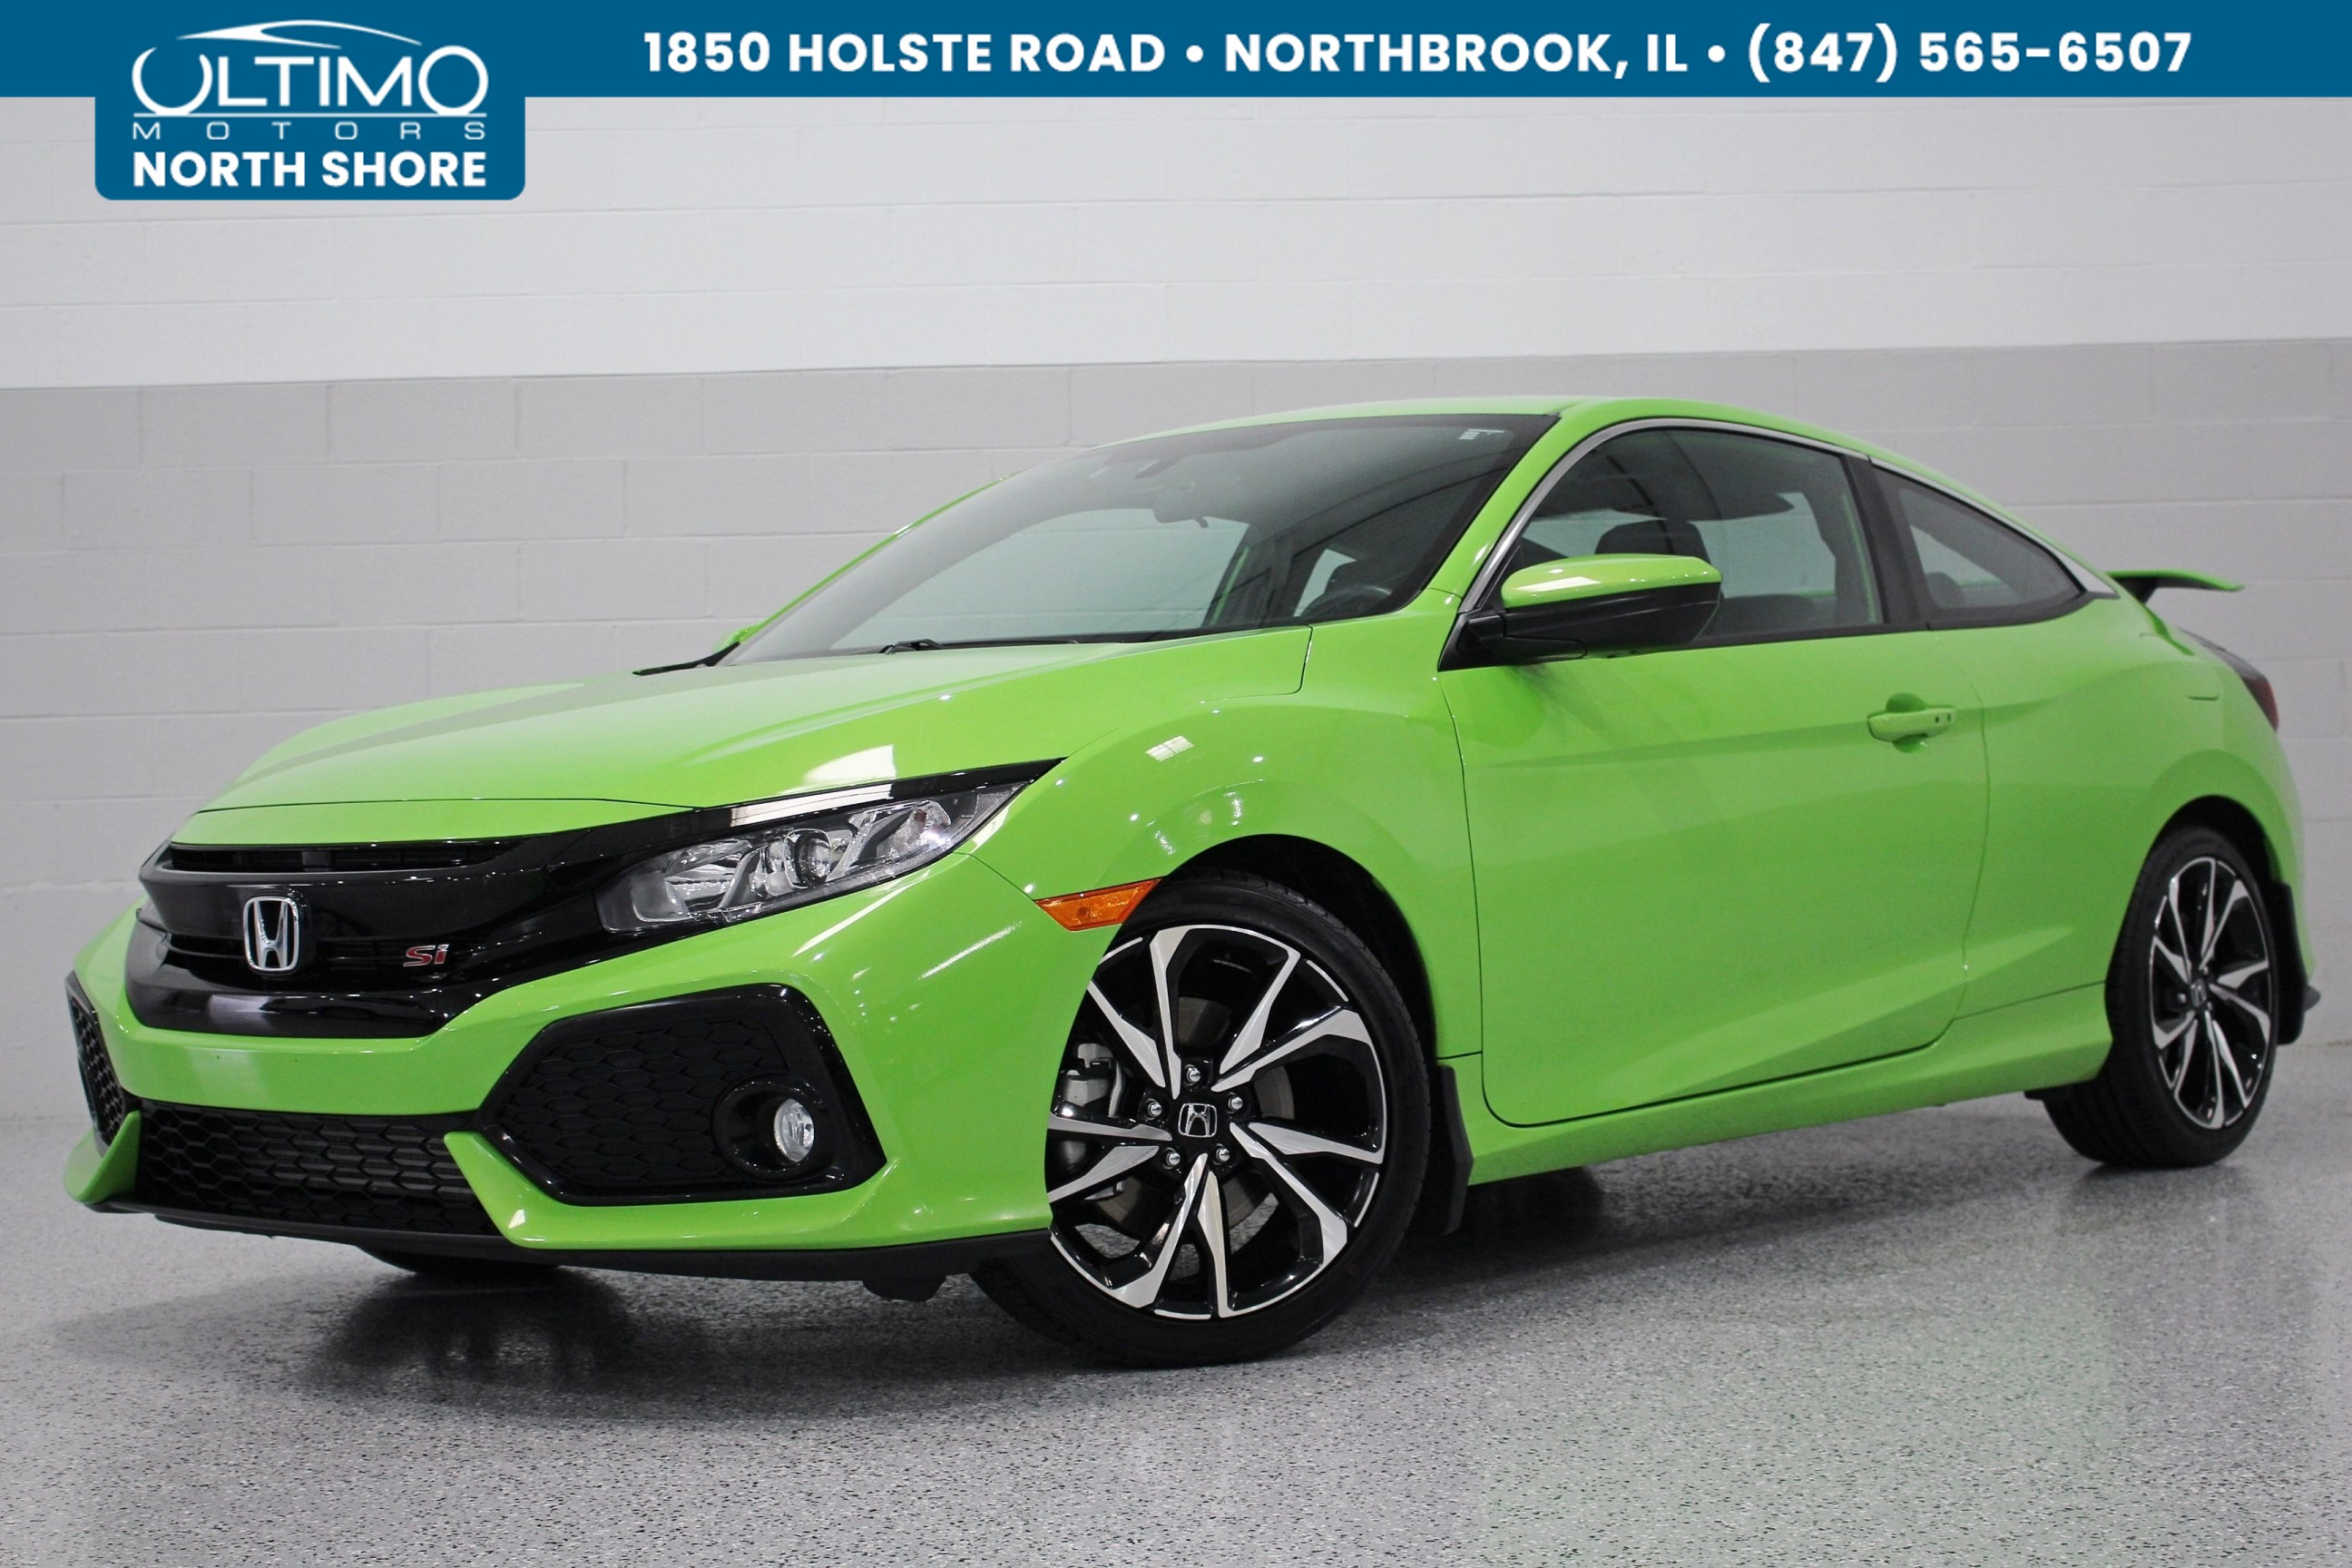 Pre-Owned 2018 Honda Civic Si Coupe Upgraded Exhaust, Sunroof, Rear Camera, Heated Seats.